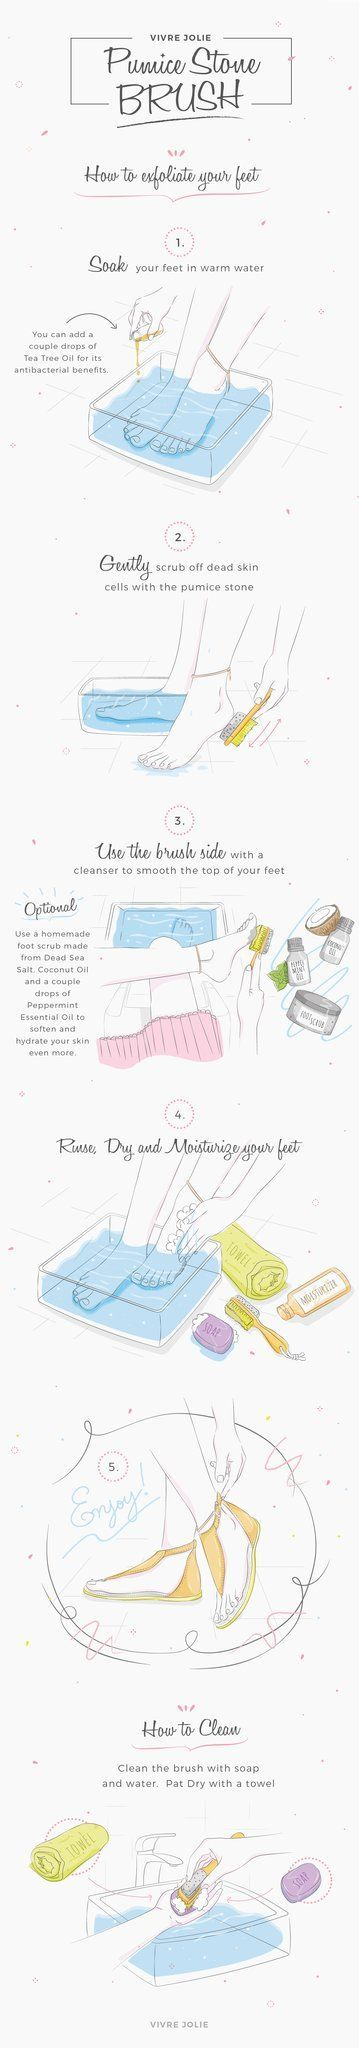 How to exfoliate your feet with a DIY homemade Foot Scrub and a Pumice Stone Brush that removes callus and smoothes - by Vivre Jolie  #footscrub #vivrejolie #212viprose #212vip #212vipperfume #perfumes #fragrance #carolinaherrera #espana